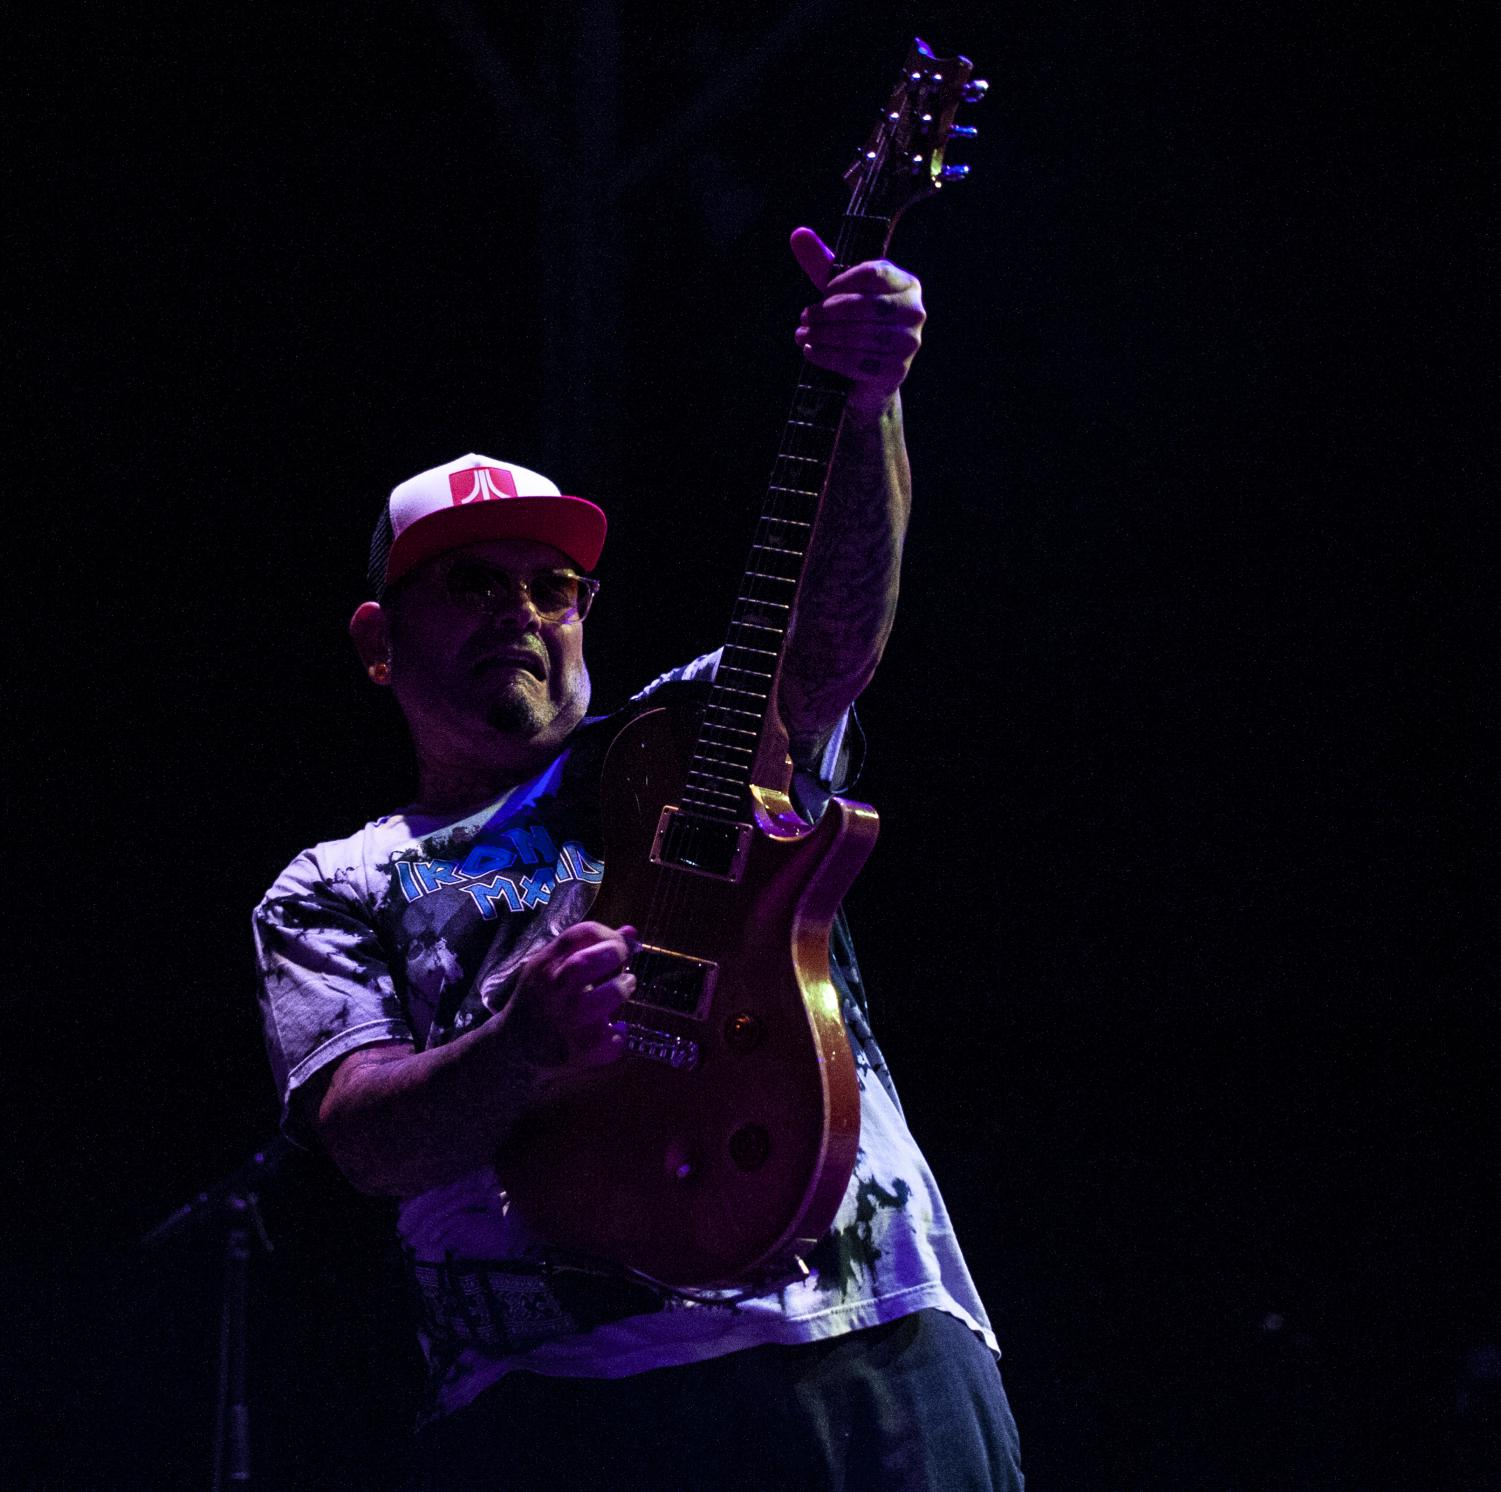 Marcos+Curiel+of+P.O.D.+holds+up+his+guitar+during+their+performance+Friday%2C+Aug.+31%2C+2018%2C+during+the+Gen+X+Tour+inside+the+Grandstand+stadium+at+the+Du+Quoin+State+Fair.+%28Mary+Barnhart+%7C+%40MaryBarnhartDE%29